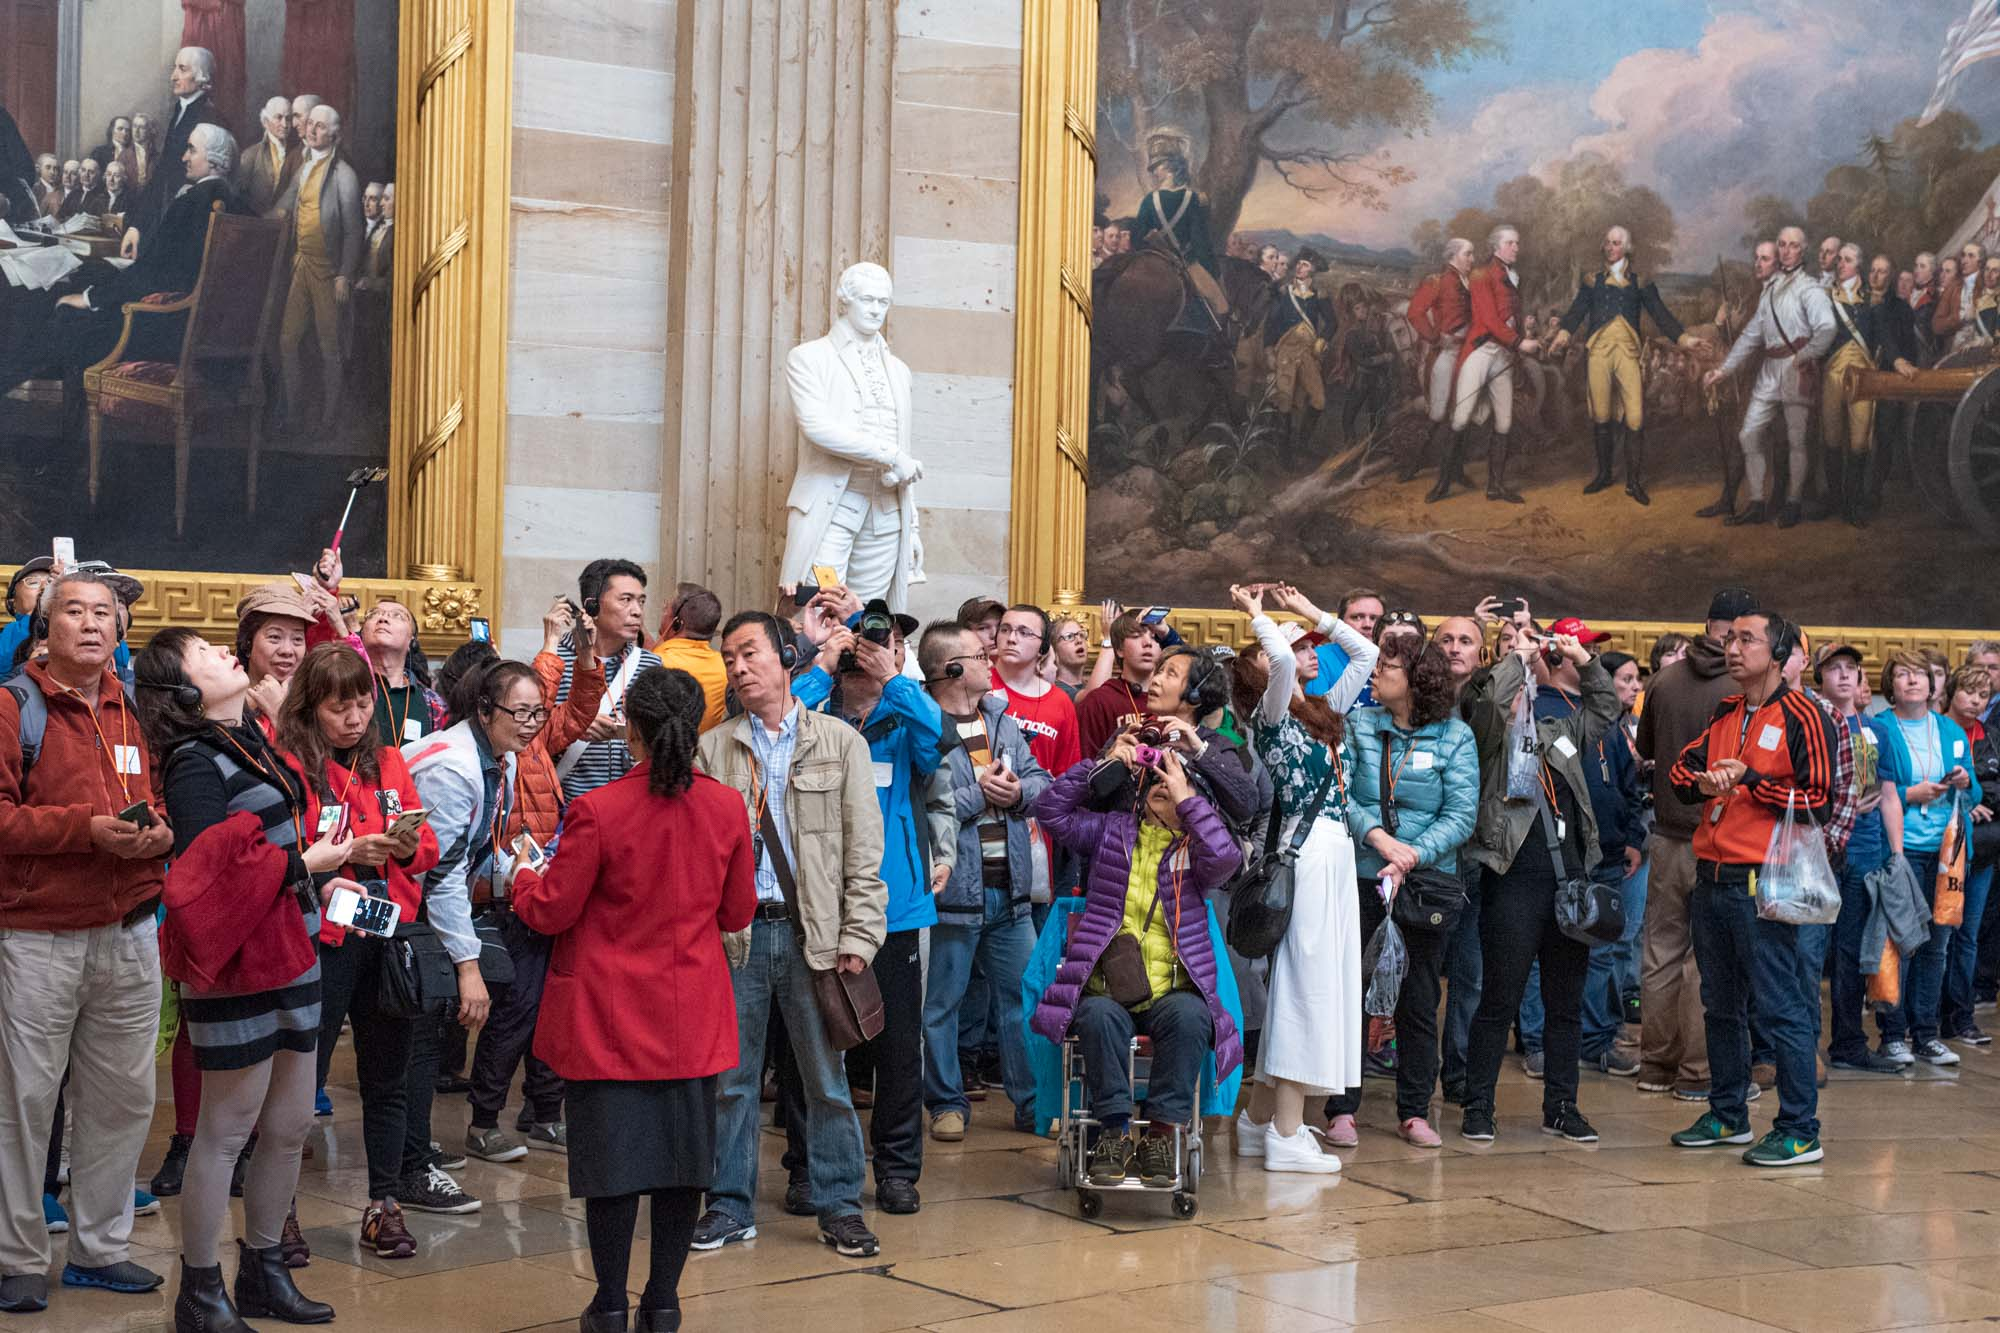 tourists gawk at the sights at the United States Capitol in Washington, DC